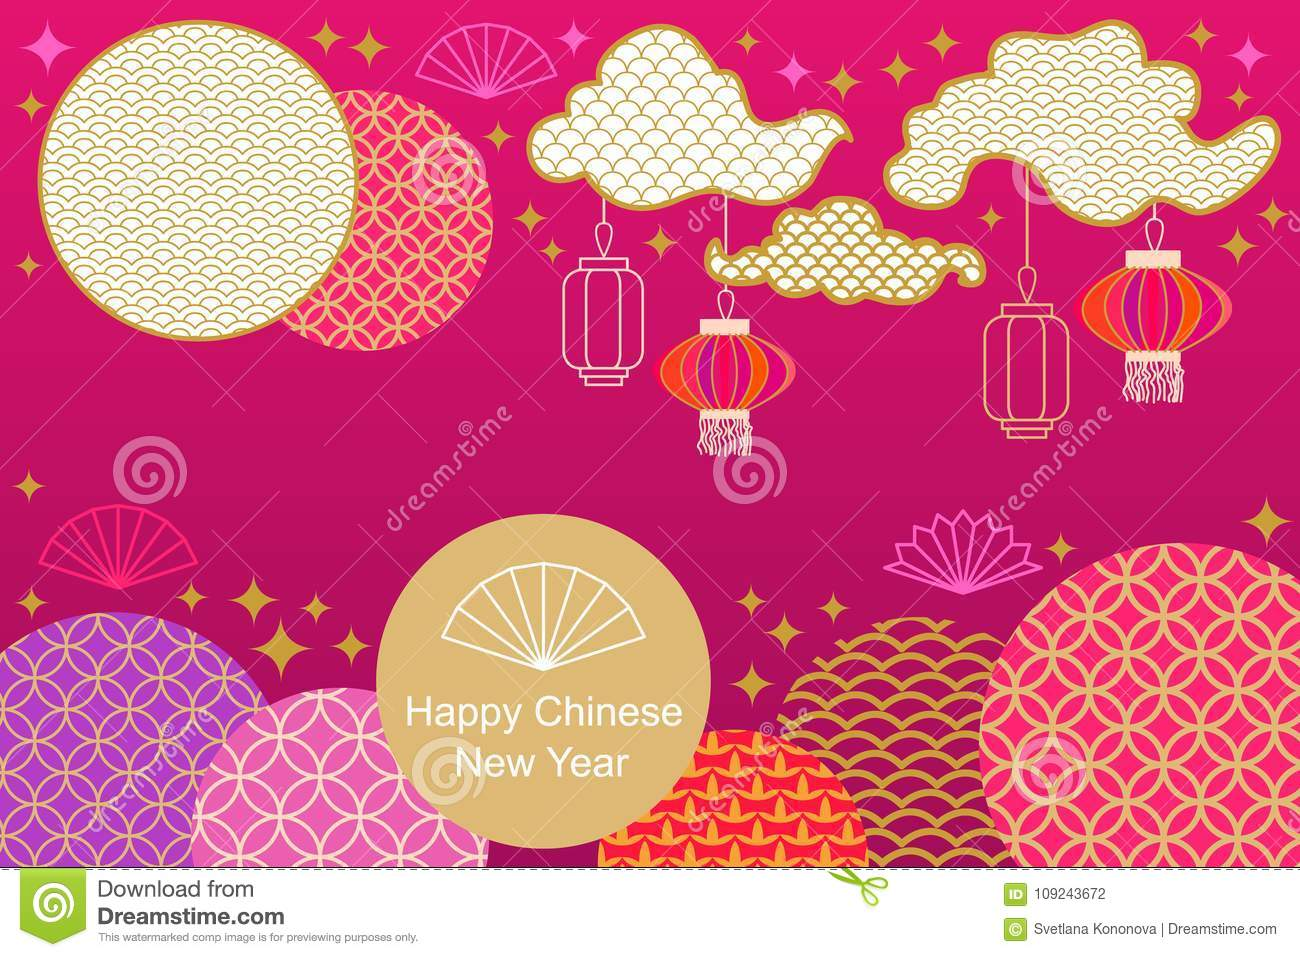 Happy chinese new year card colorful abstract ornate circles happy chinese new year card colorful abstract ornate circles clouds blooming flowers and oriental lanterns asian korean kristyandbryce Images